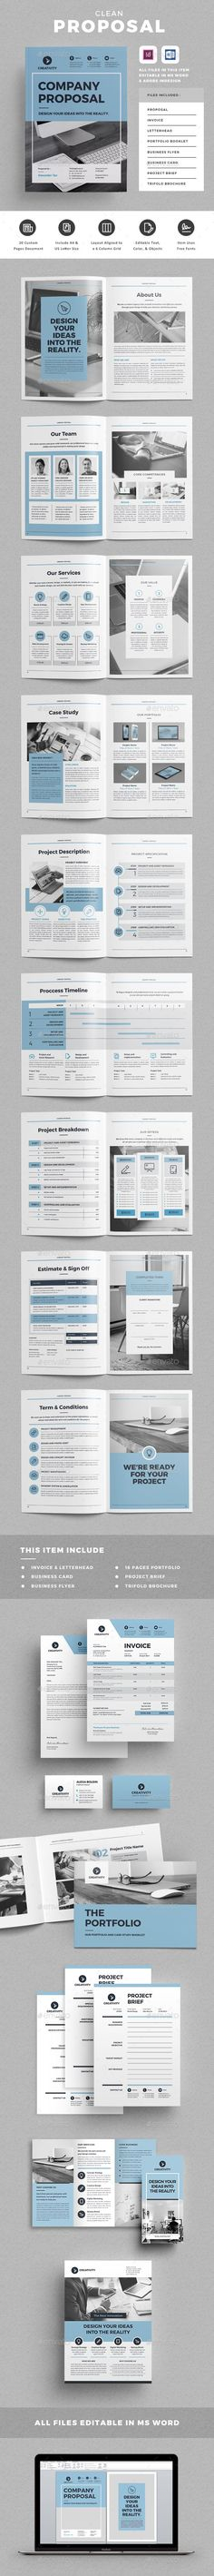 Clean Proposal Template. Download here: https://graphicriver.net/item/proposal/19782506?s_rank=2&ref=7h10